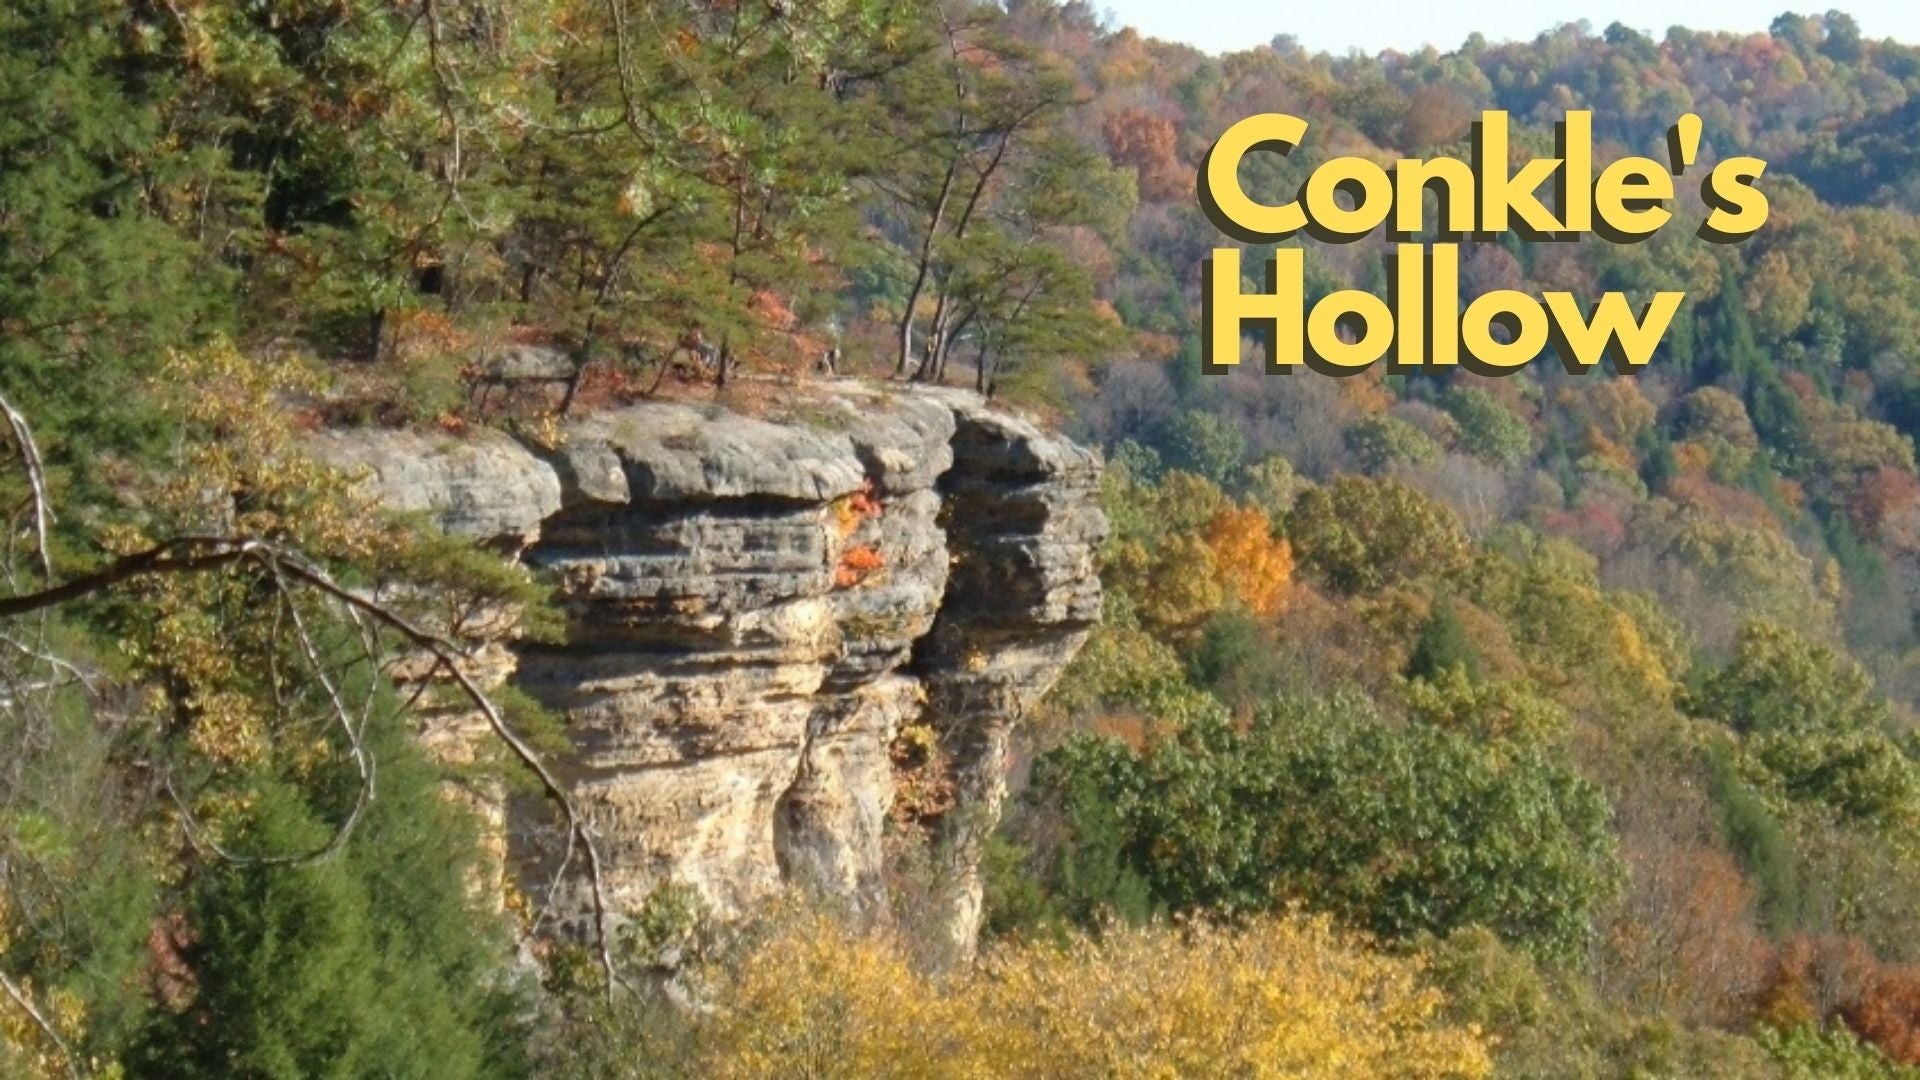 Conkle's Hollow - Hocking Hills State Park